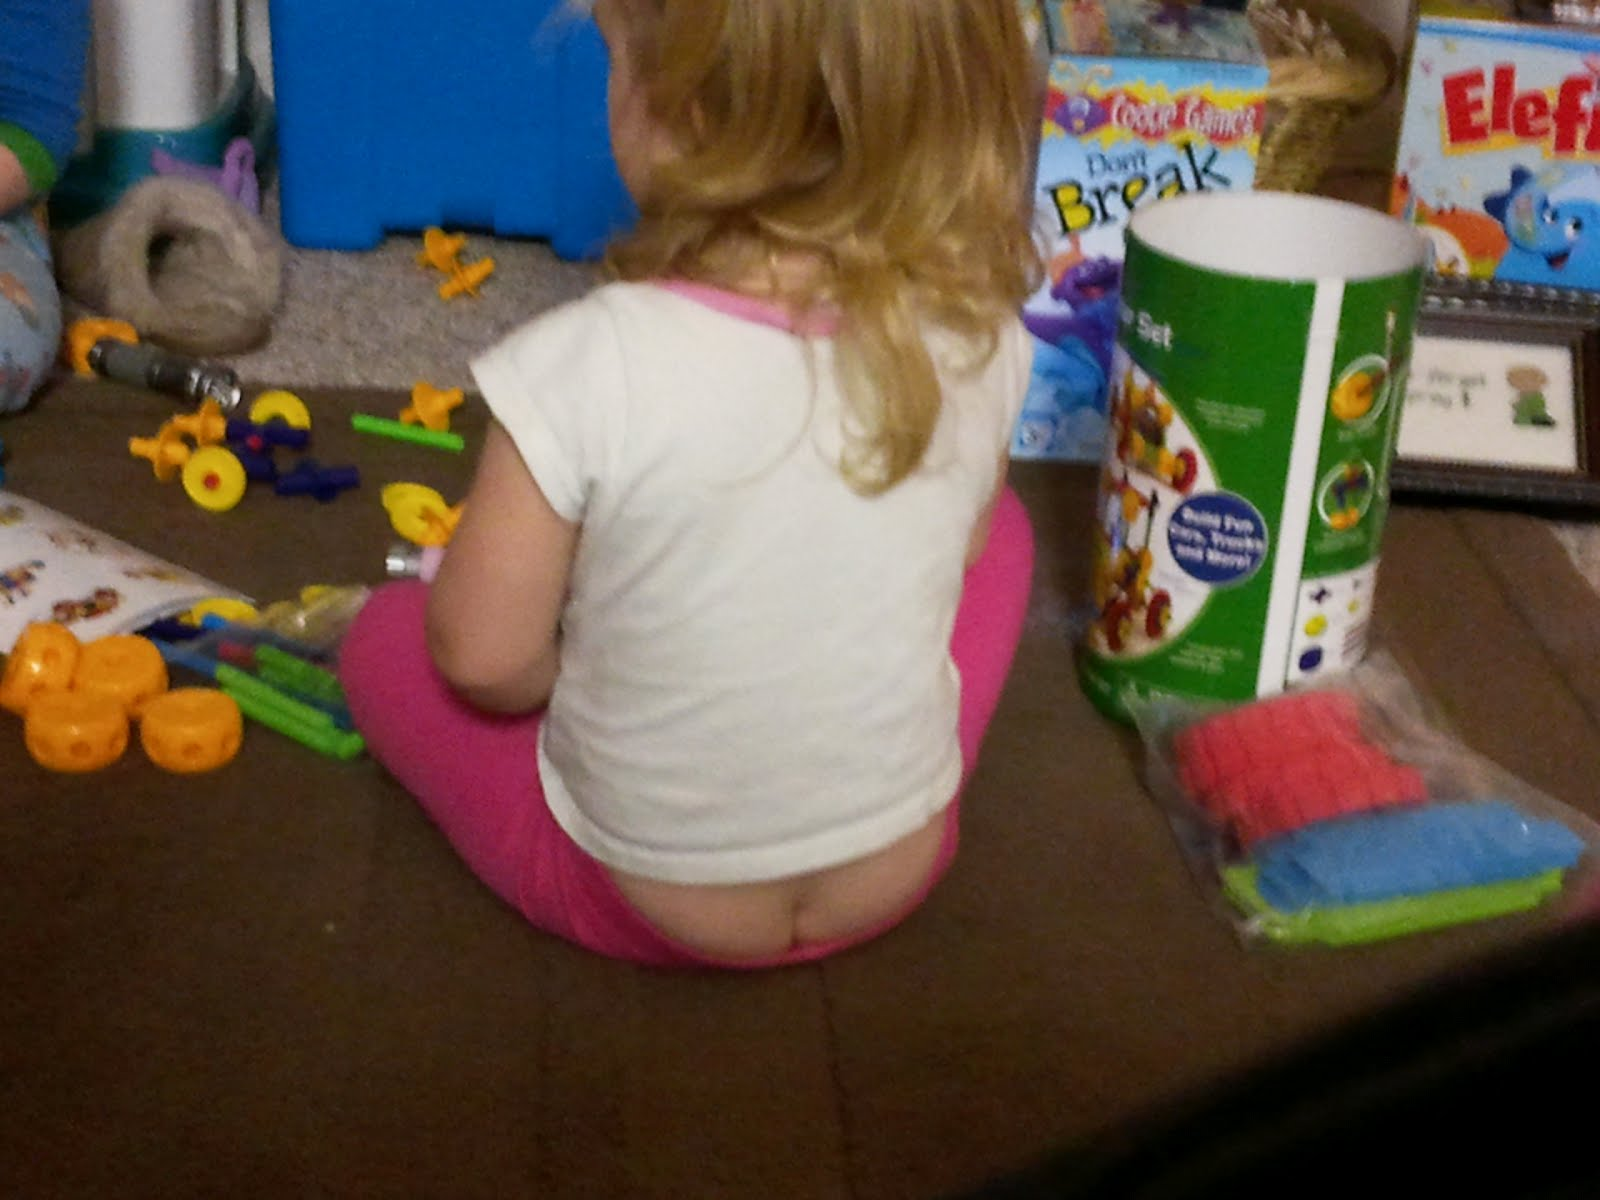 little girl but crack Her butt crack is always always always hanging out. I think its because she  has a high butt crack. I still think it is so cute anyways.